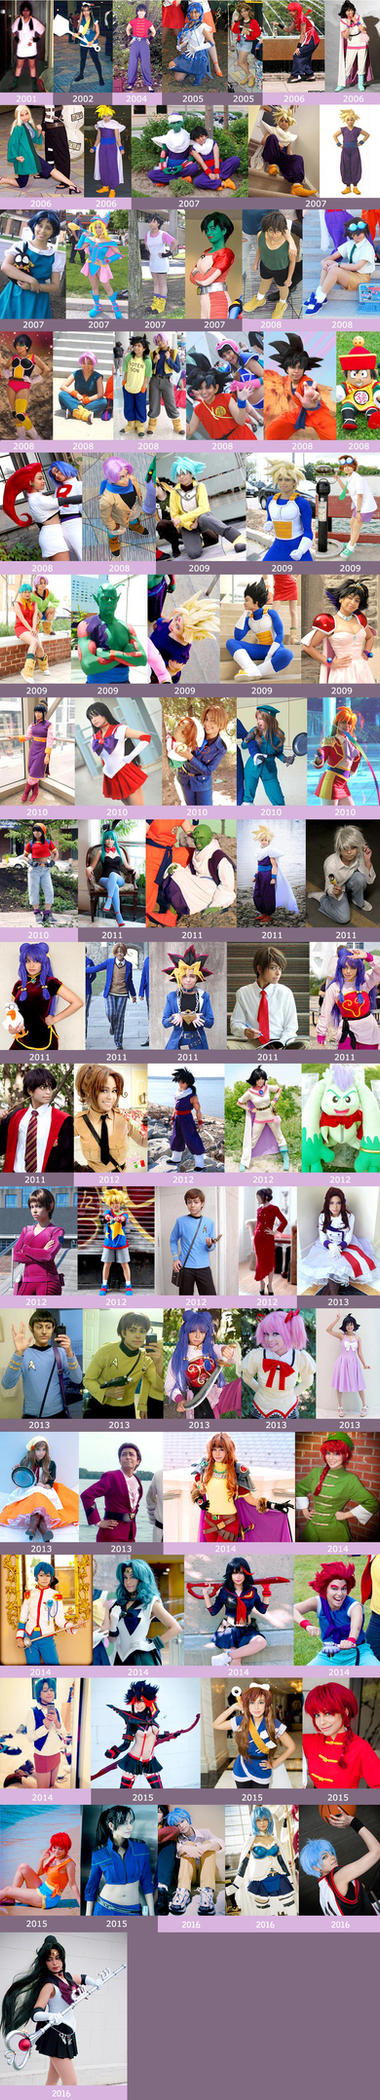 Techno's Cosplay Collage by TechnoRanma